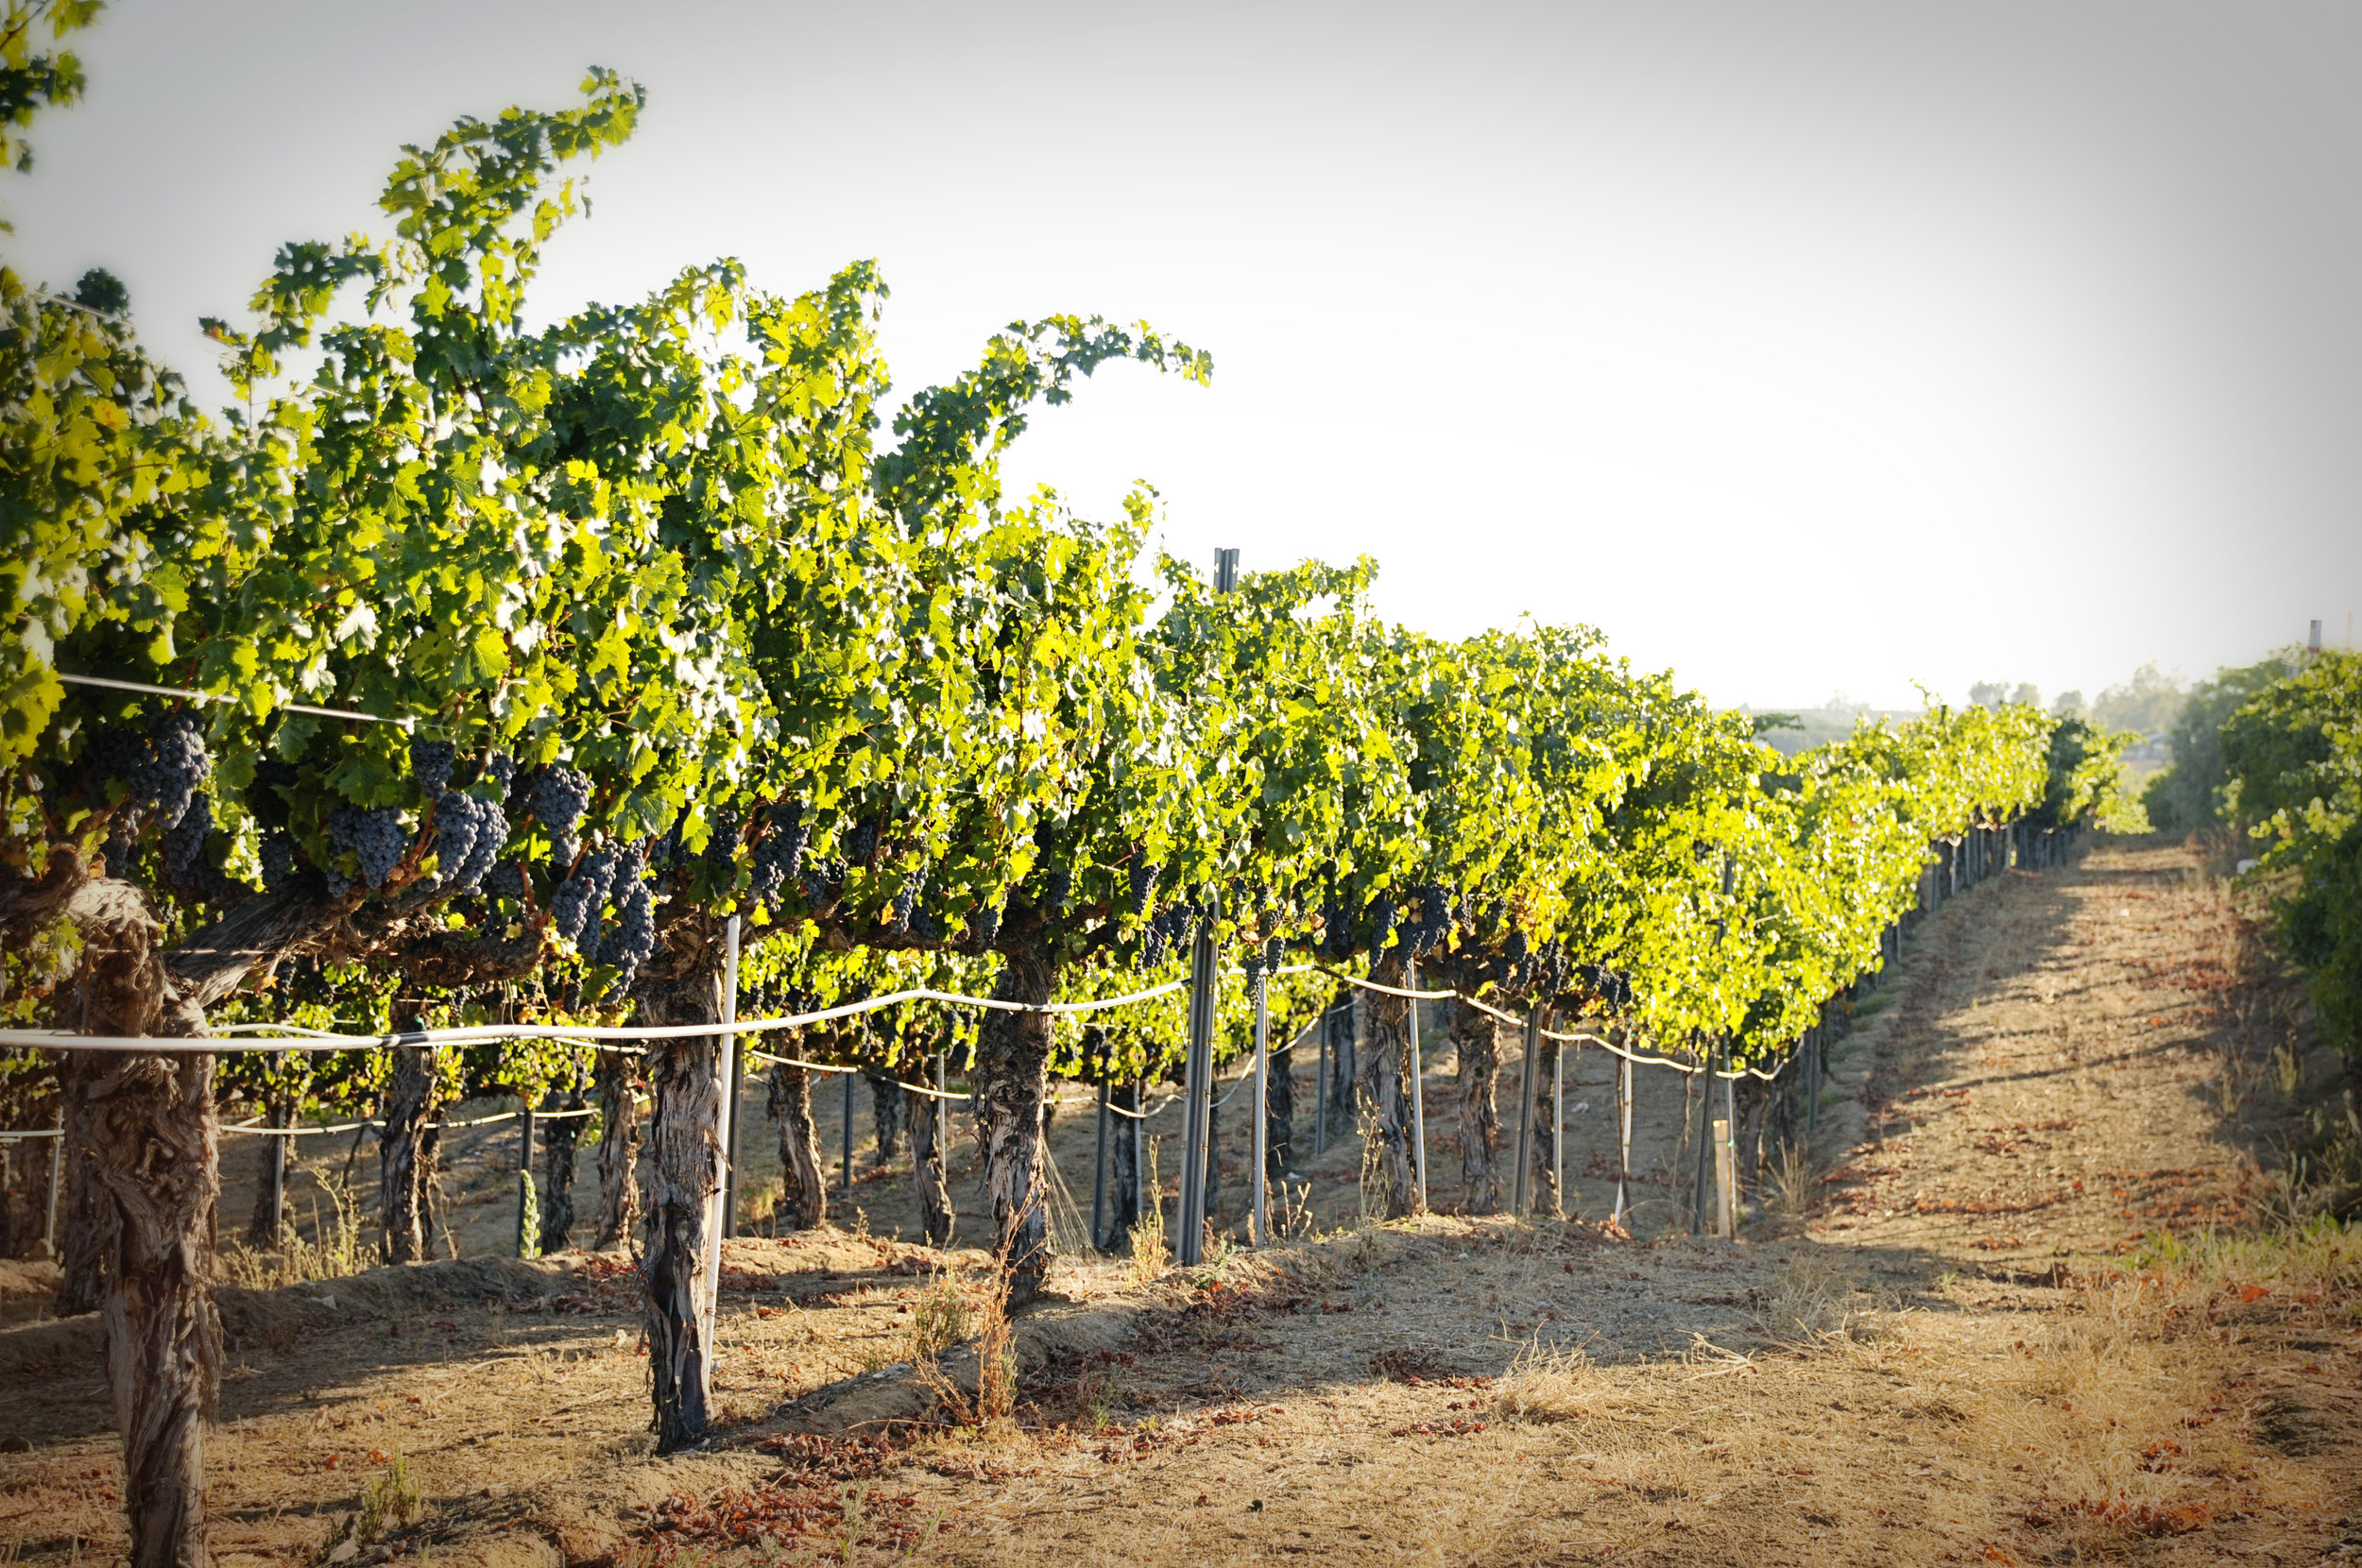 *Winery 9234 by maria pablo.jpg